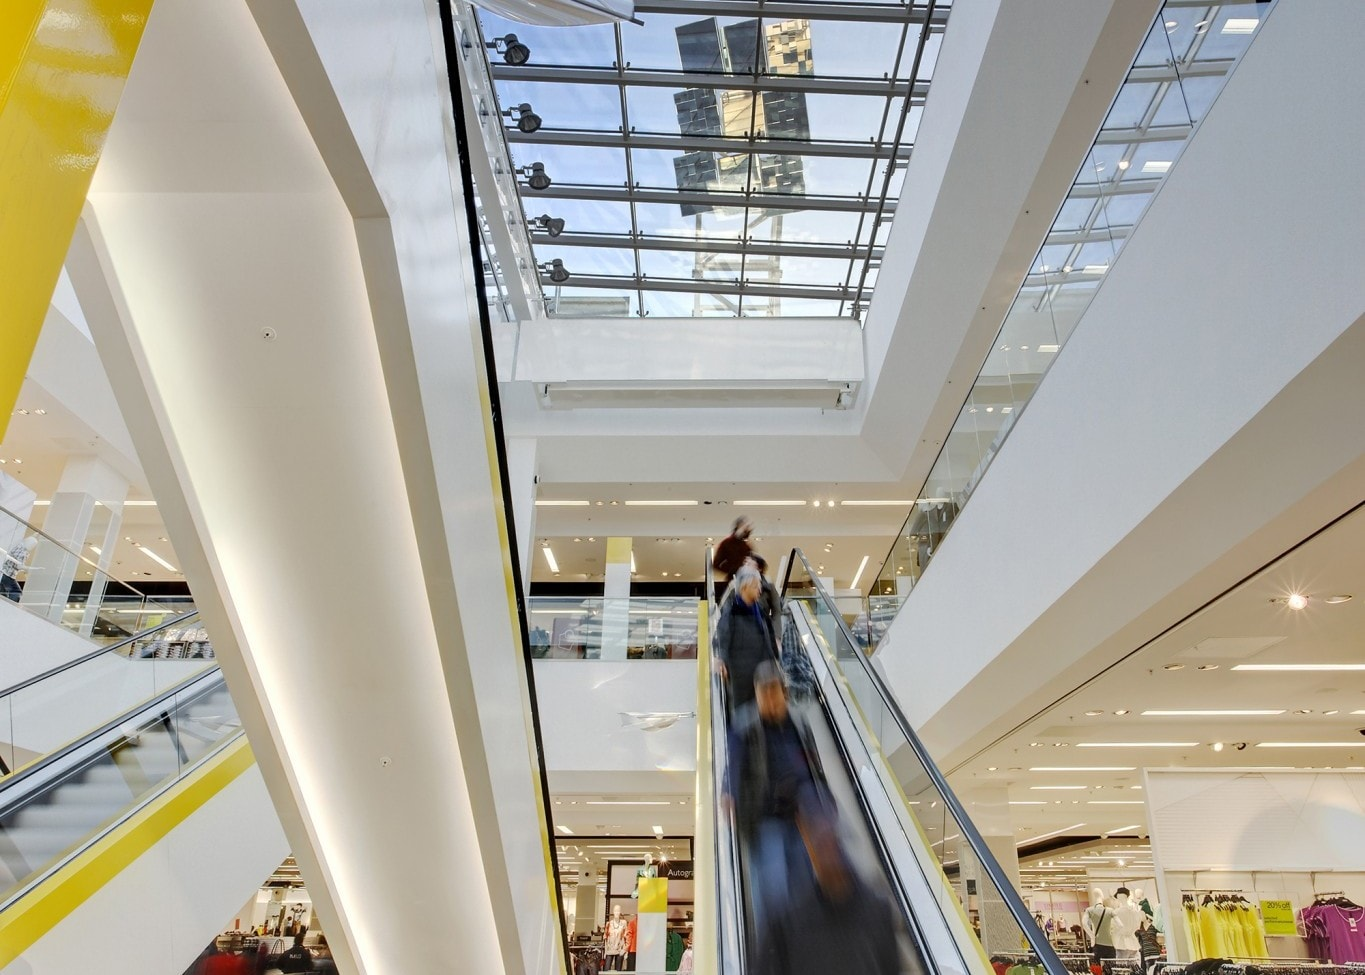 retail lighting design: M&S White City escalators